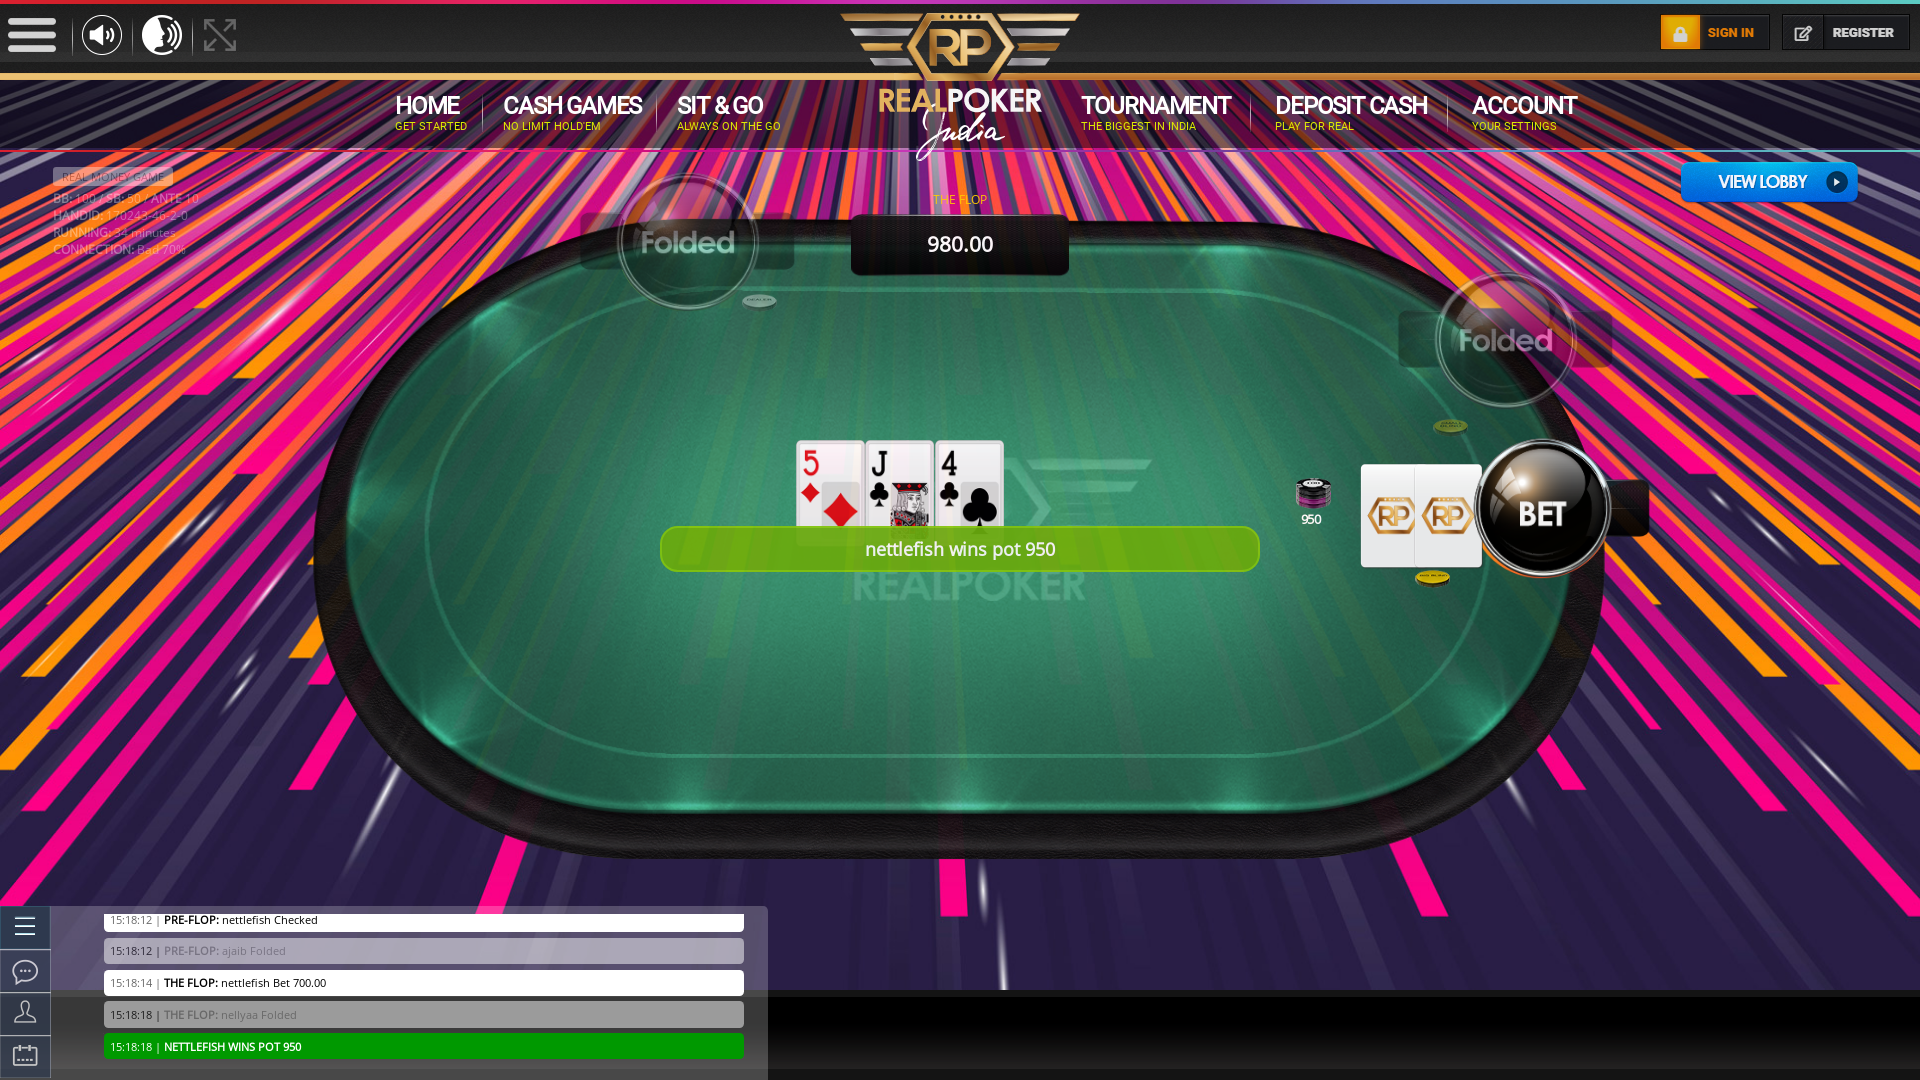 Real Indian poker on a 10 player table in the 34th minute of the game